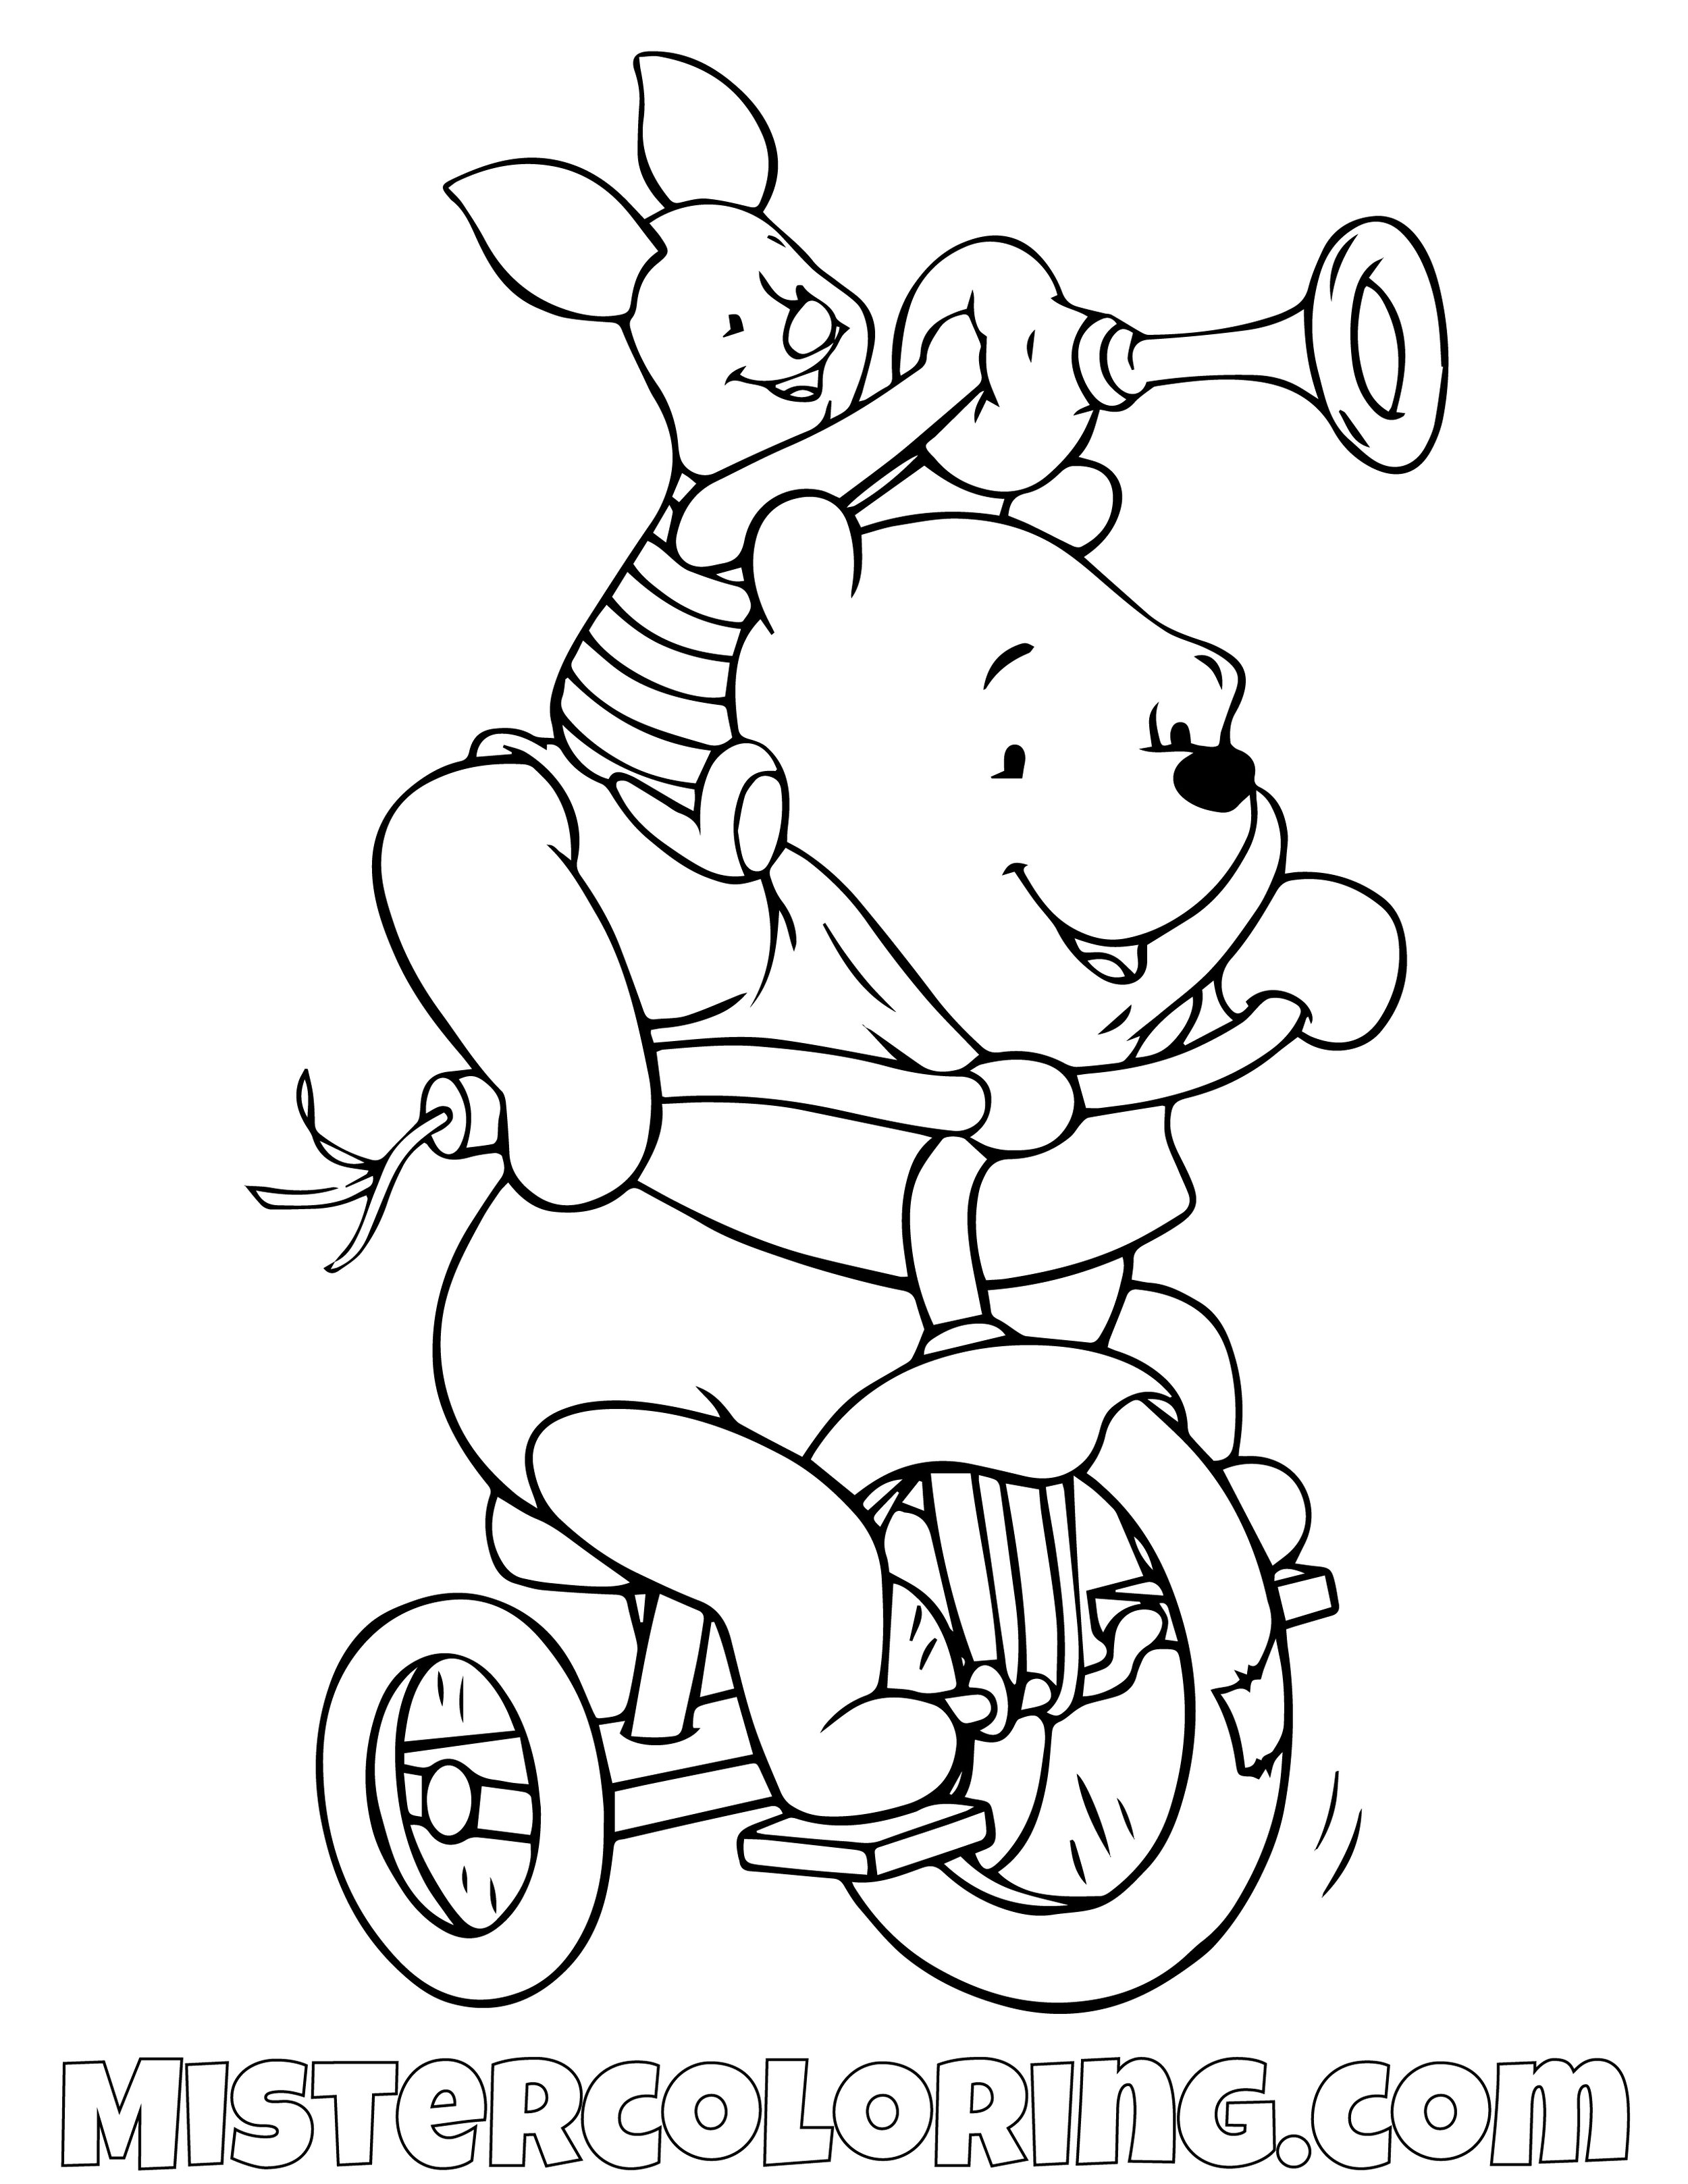 Winnie The Pooh And Piggy Riding a Bicycle Coloring Page